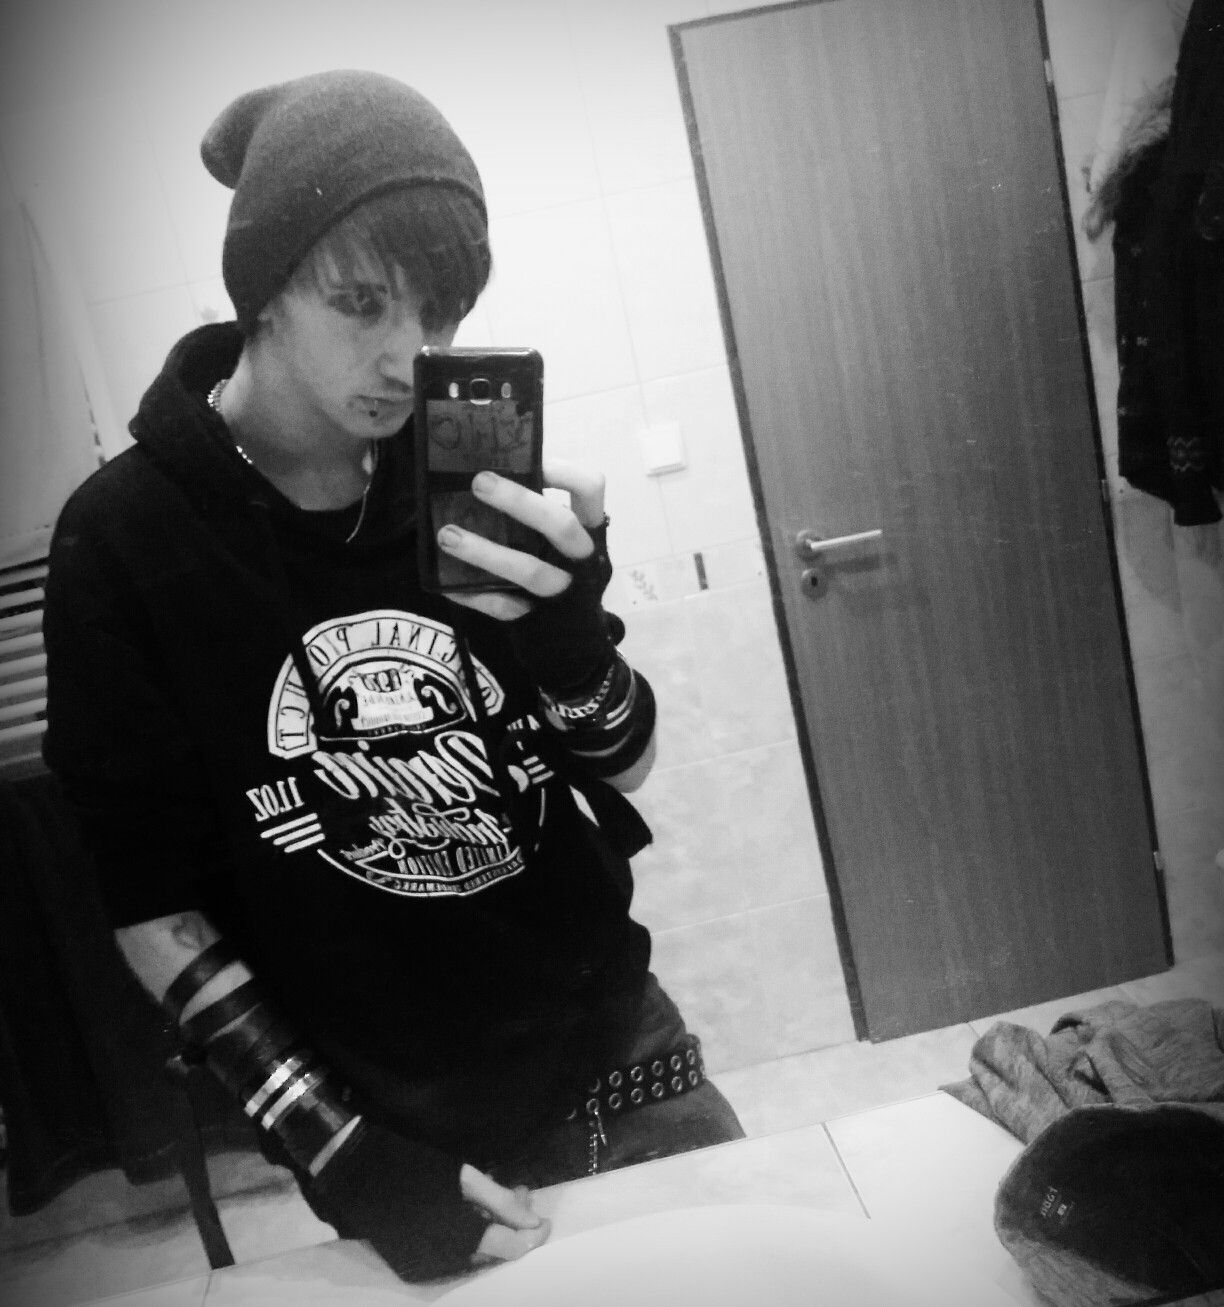 Pin by raissa lewin on emo style u pinterest emo emo boys and